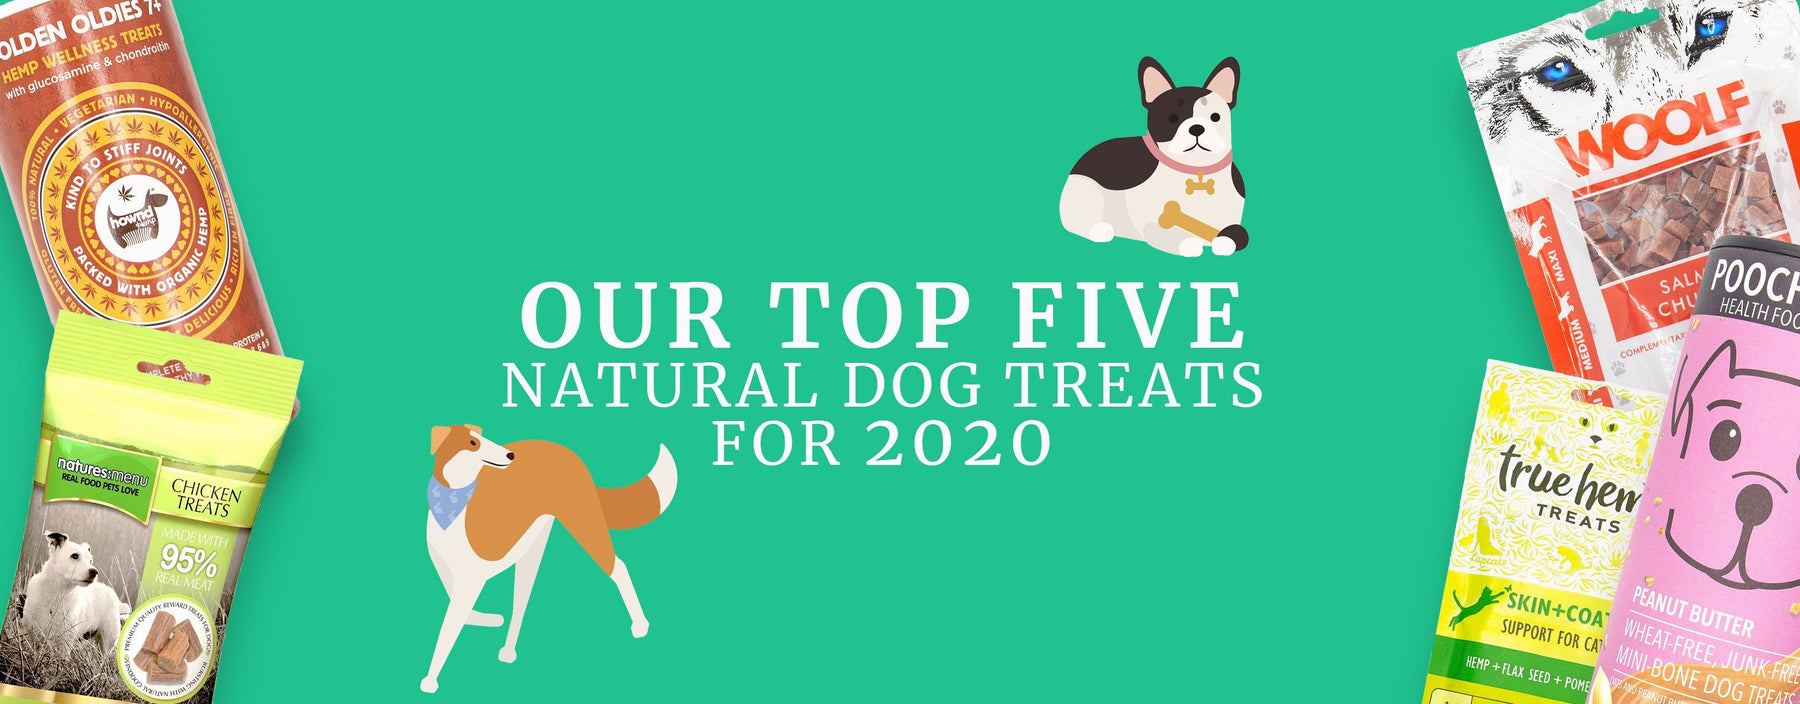 Our 2020 Top 5 Natural Dog Treats